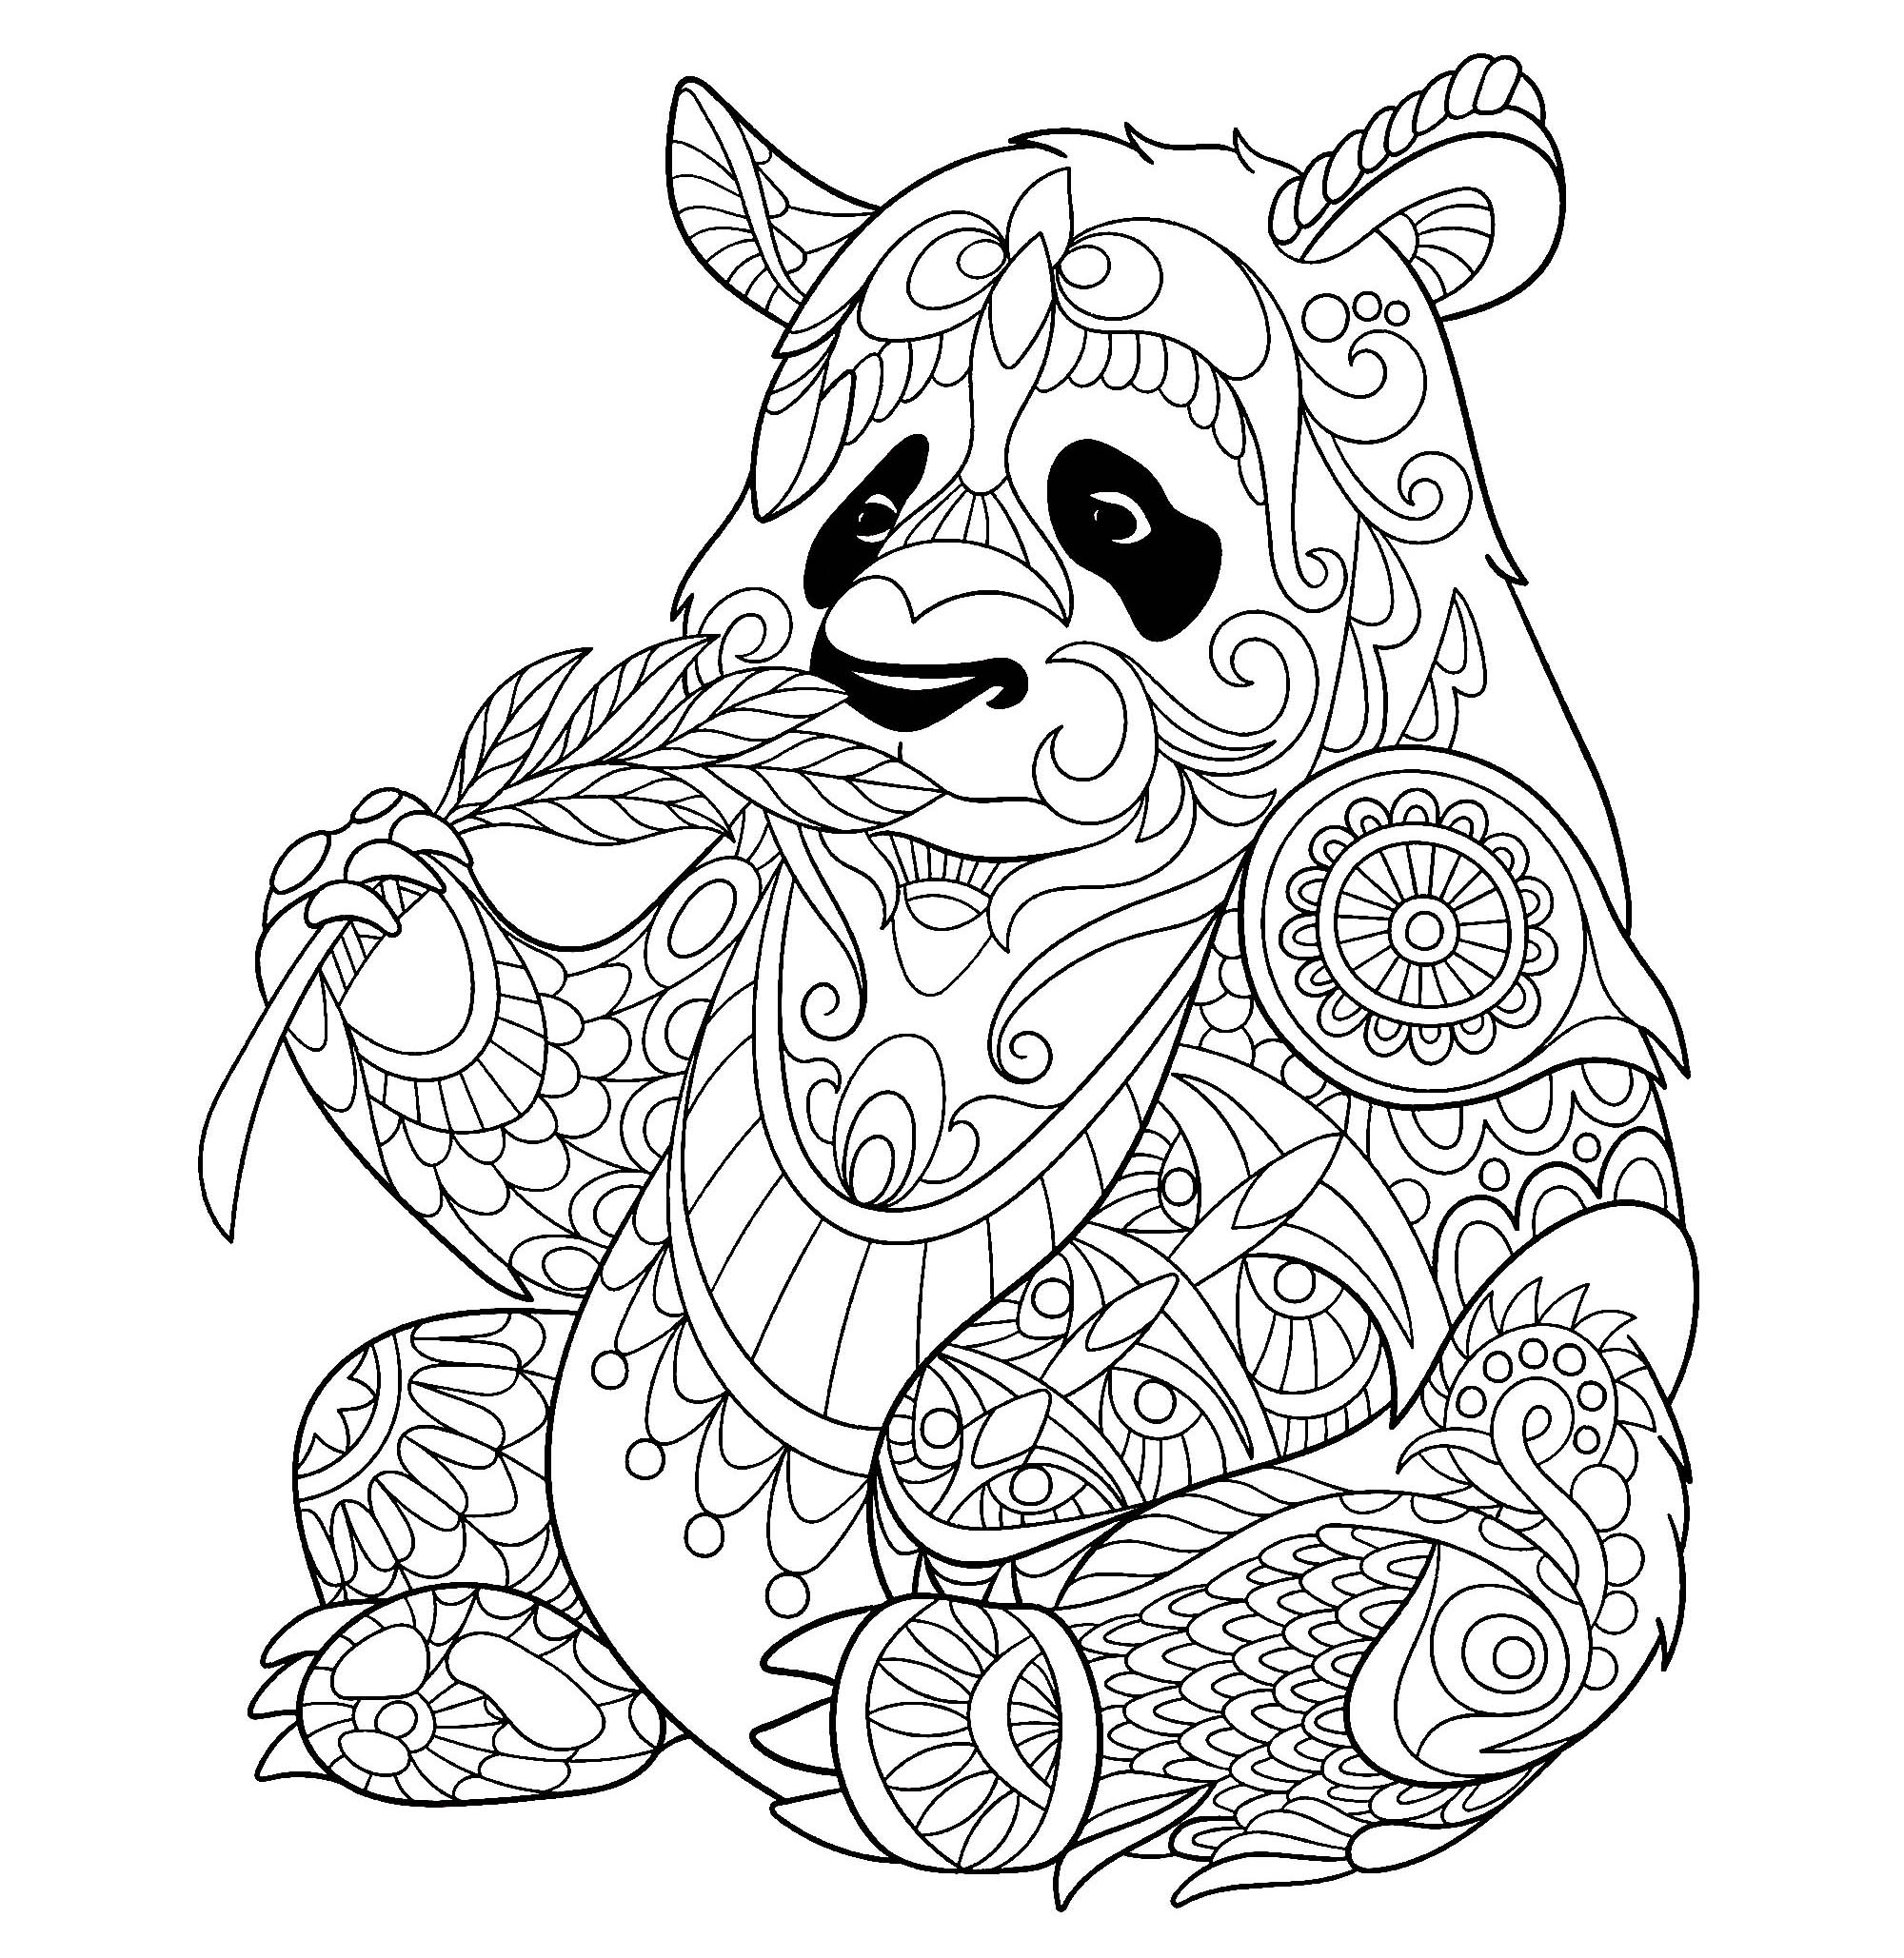 2000x2057 Panda Eating Bamboo Shoot